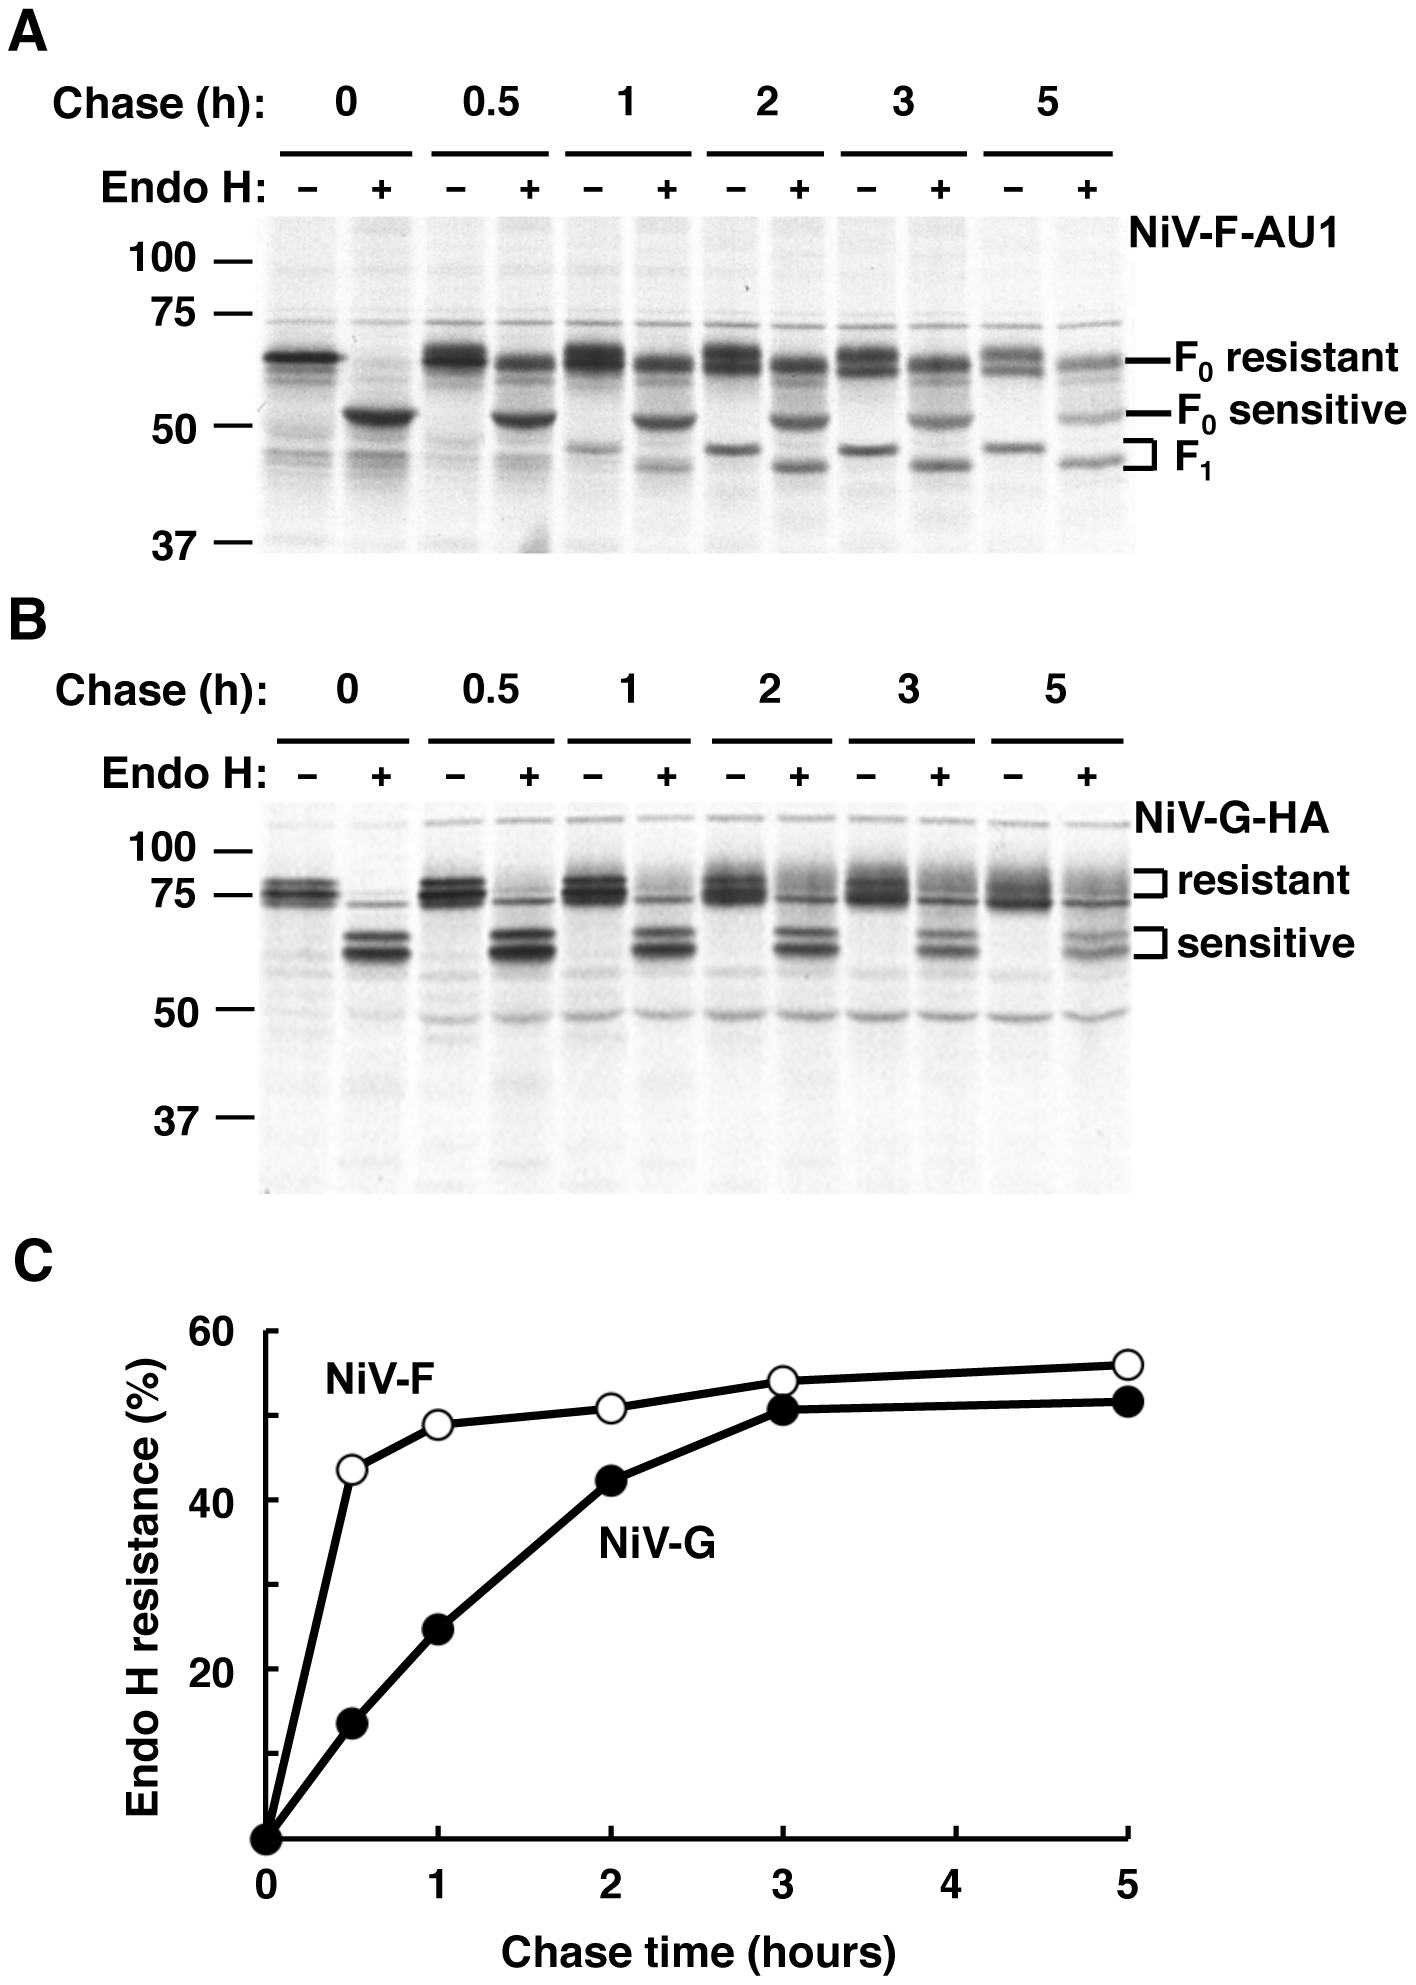 NiV-F and NiV-G exhibit different rates of biosynthetic trafficking.